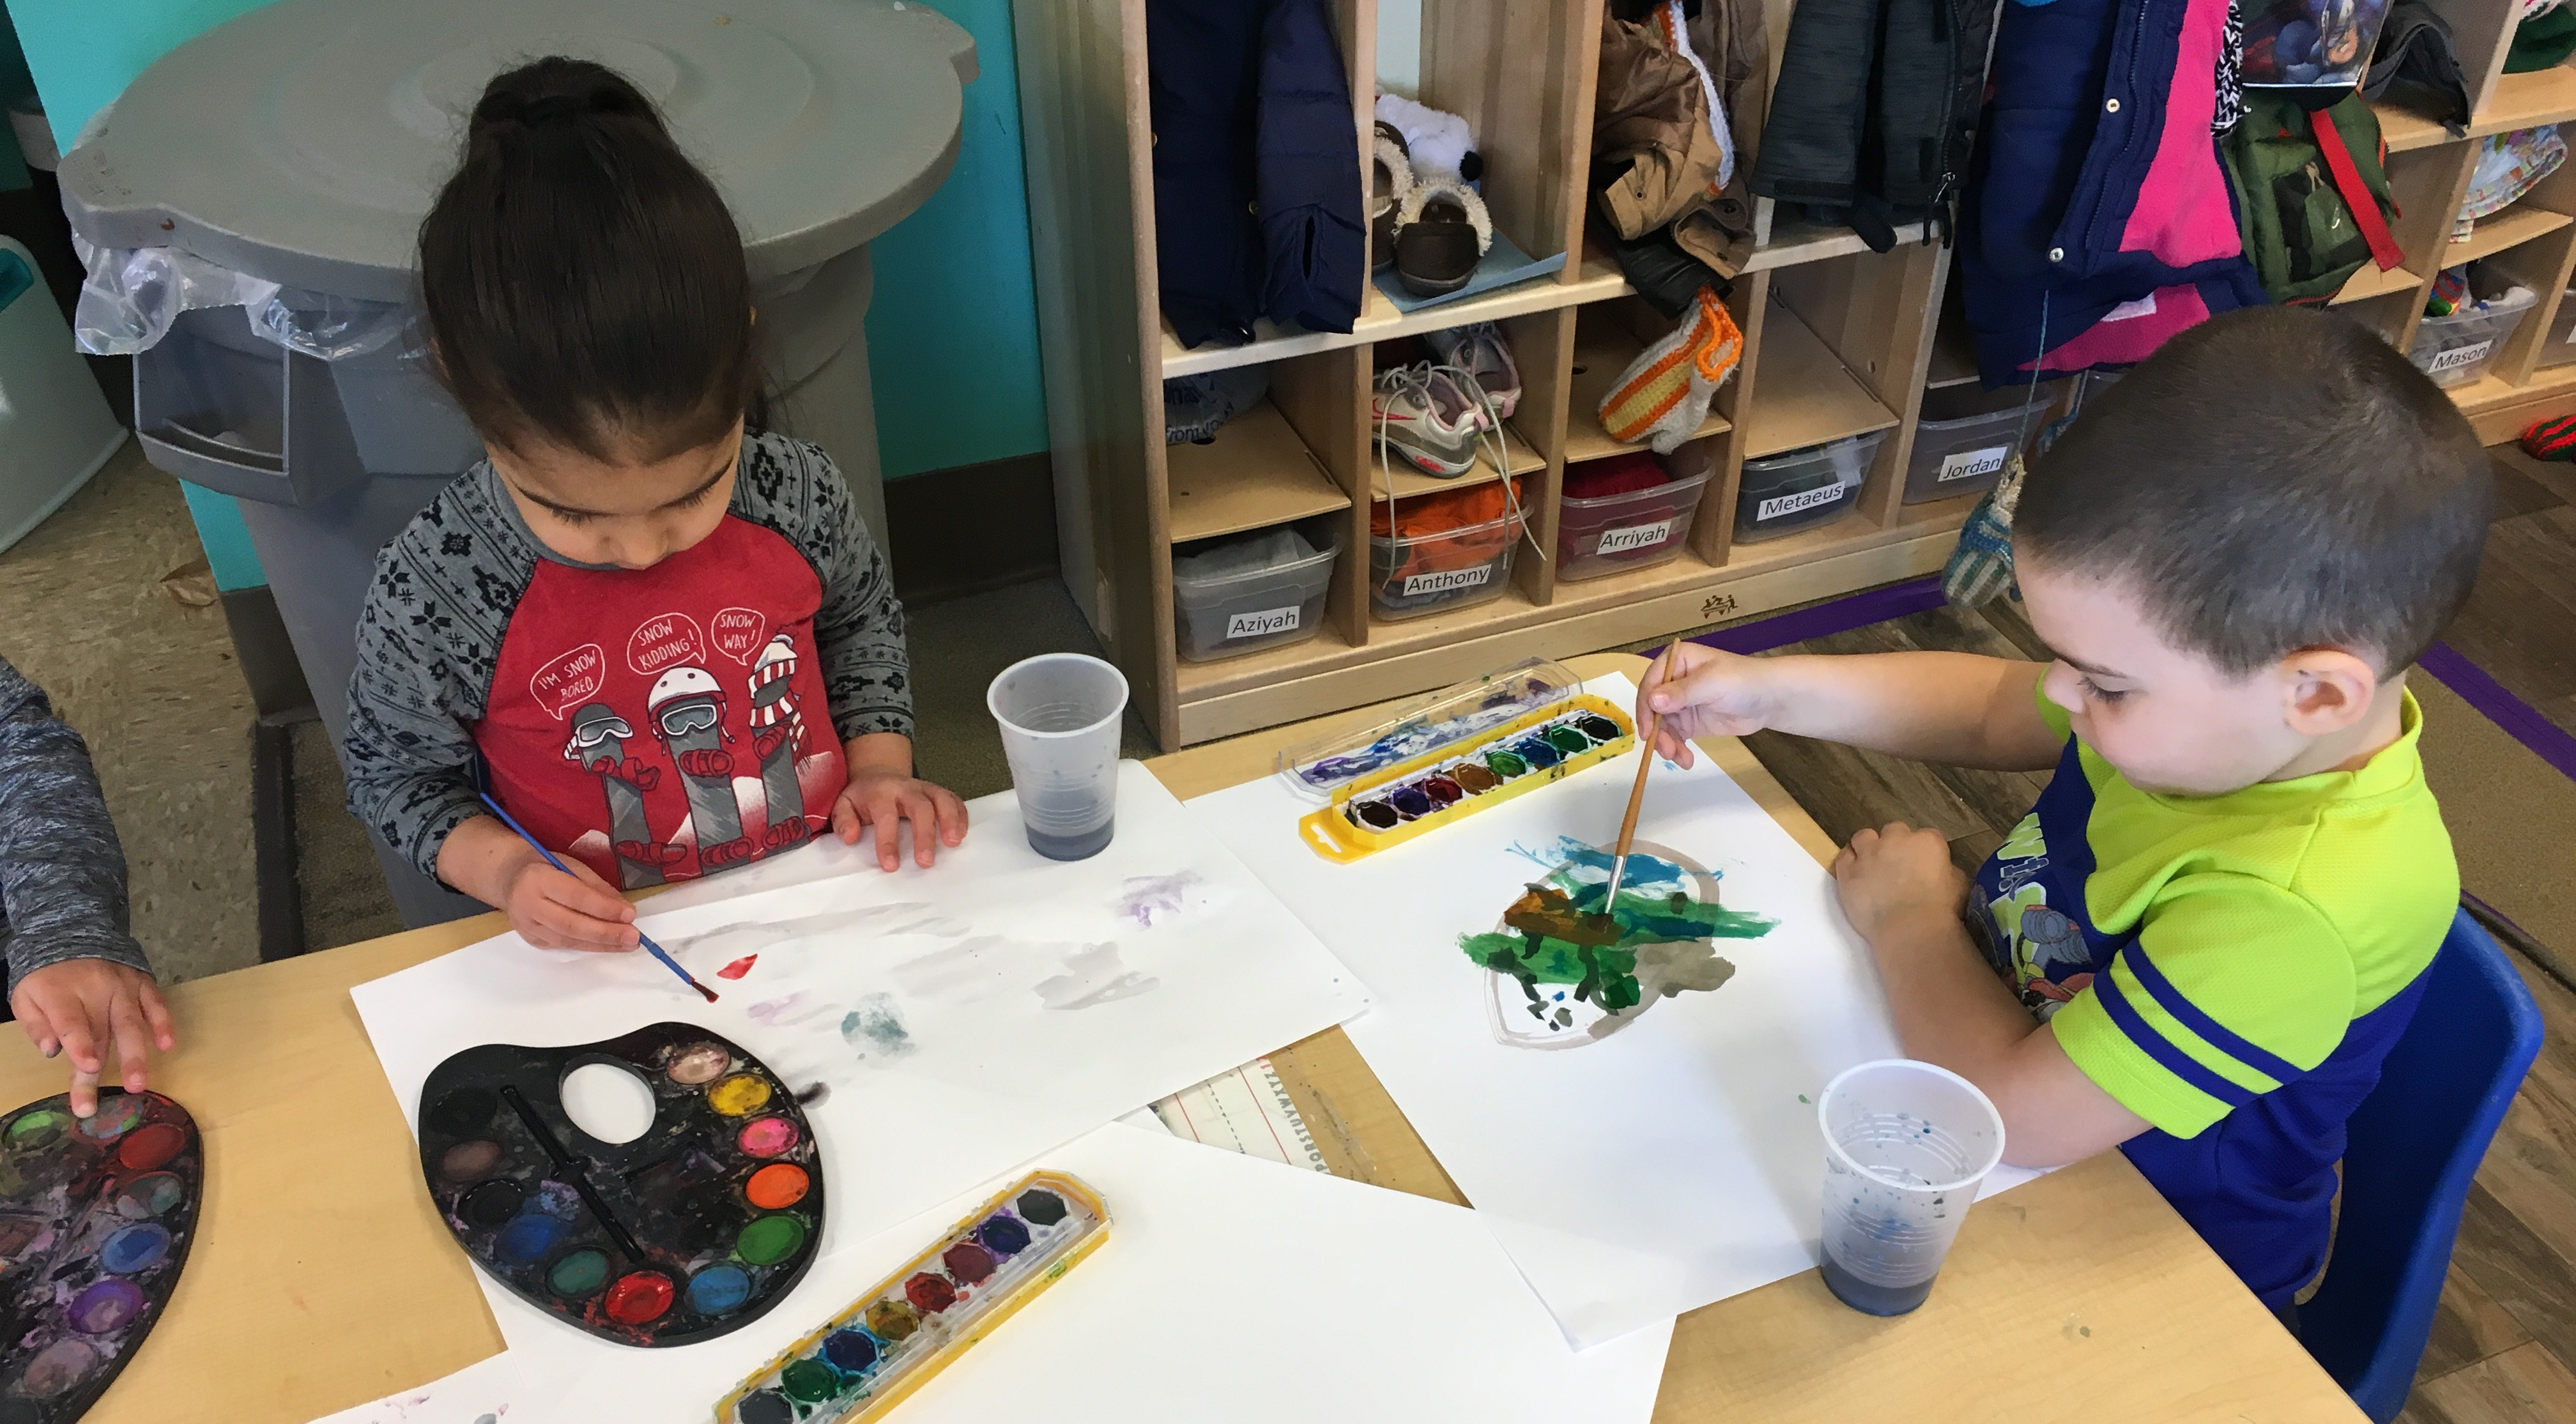 Two children use watercolor paints to make pictures.